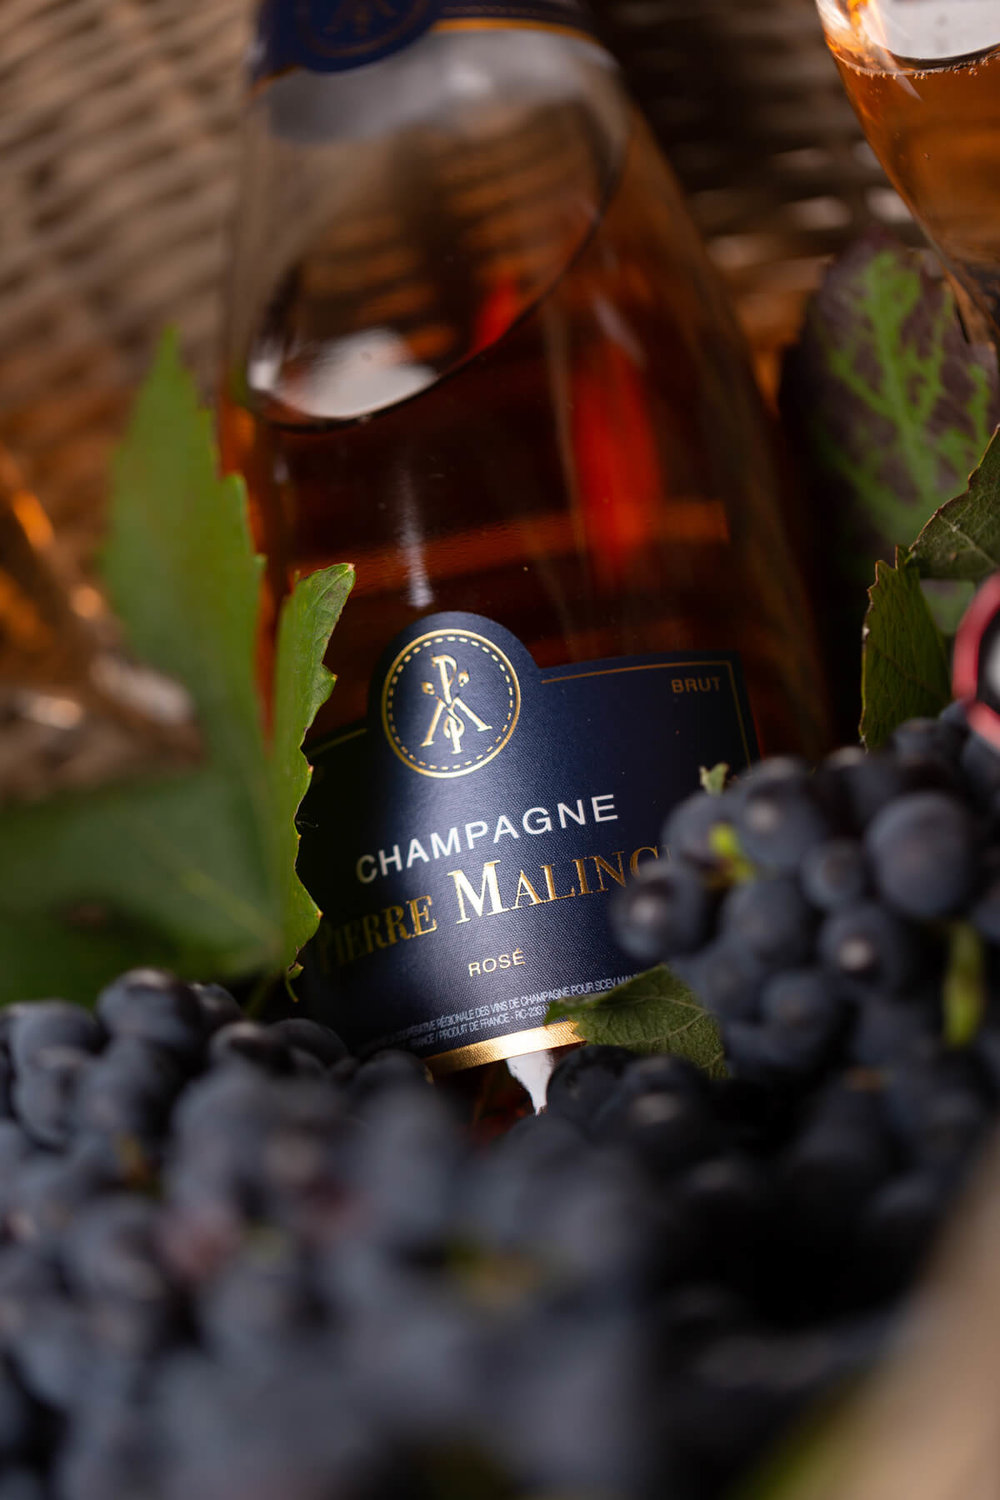 Photographe Champagne Epernay - Tristan Meunier - Champagne Malingre -14.jpg